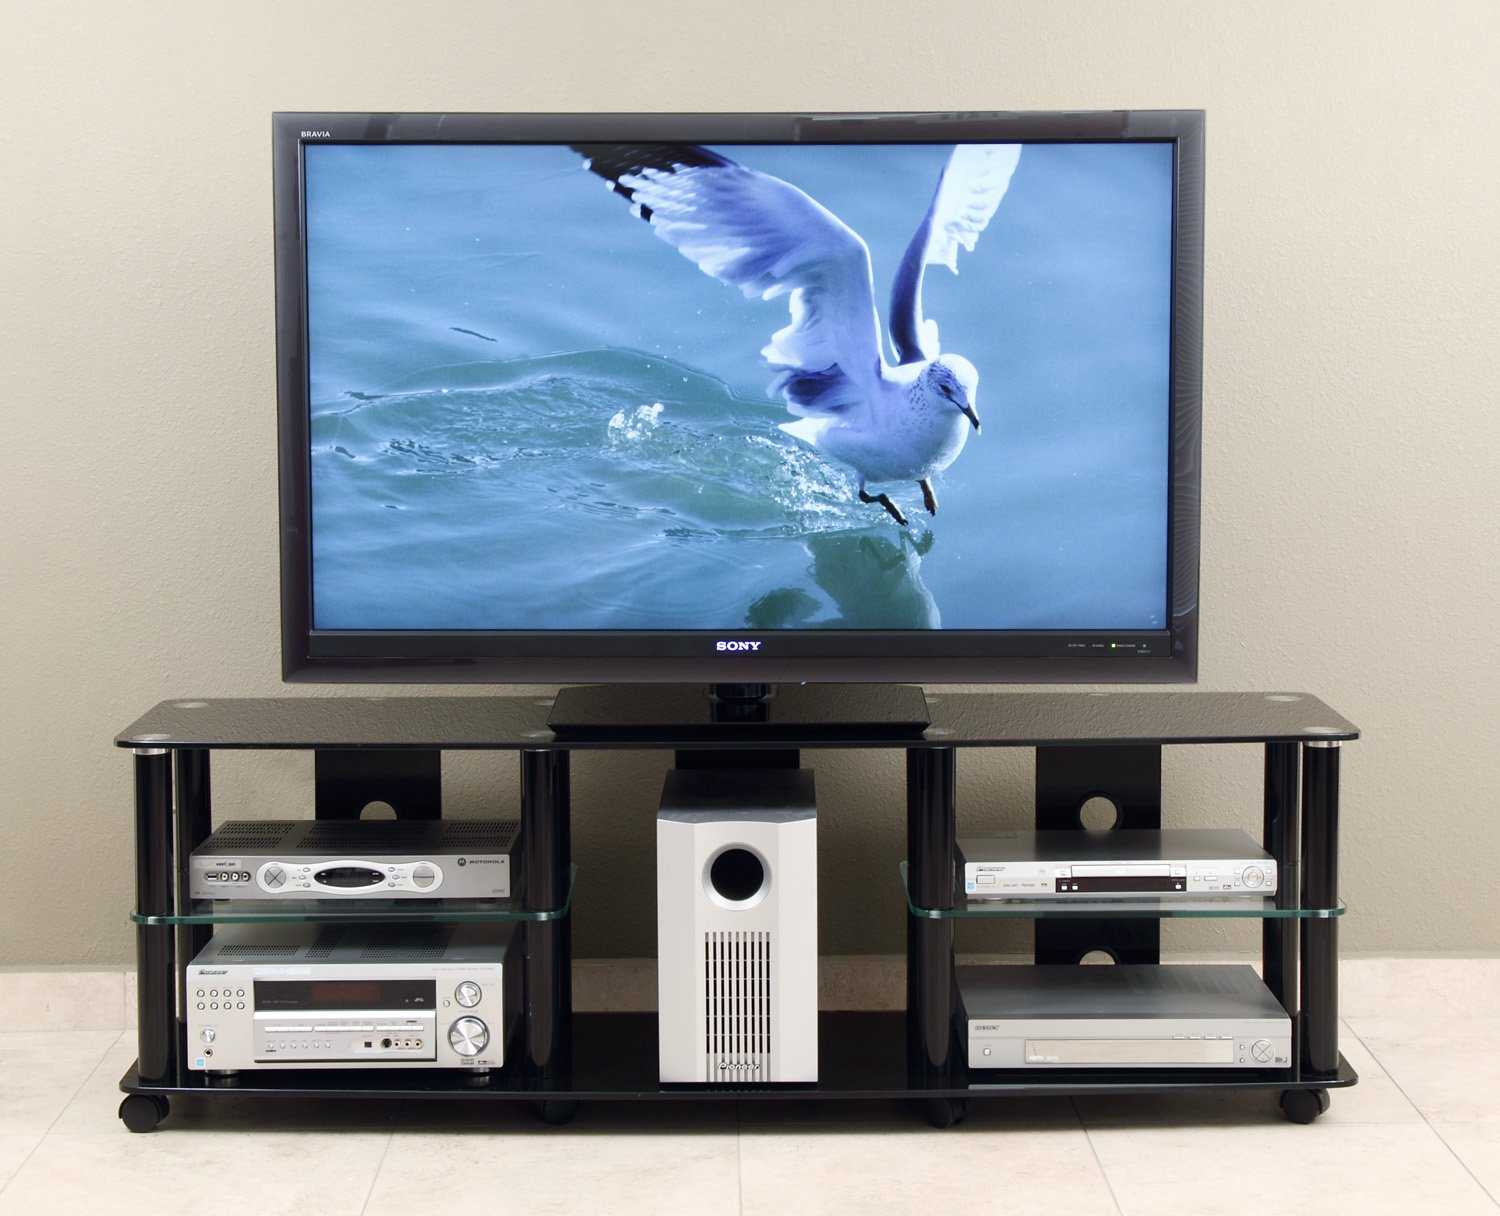 TransDeco 65 inch TV Stand with Casters for 40-70 inch LCD/LED Televison